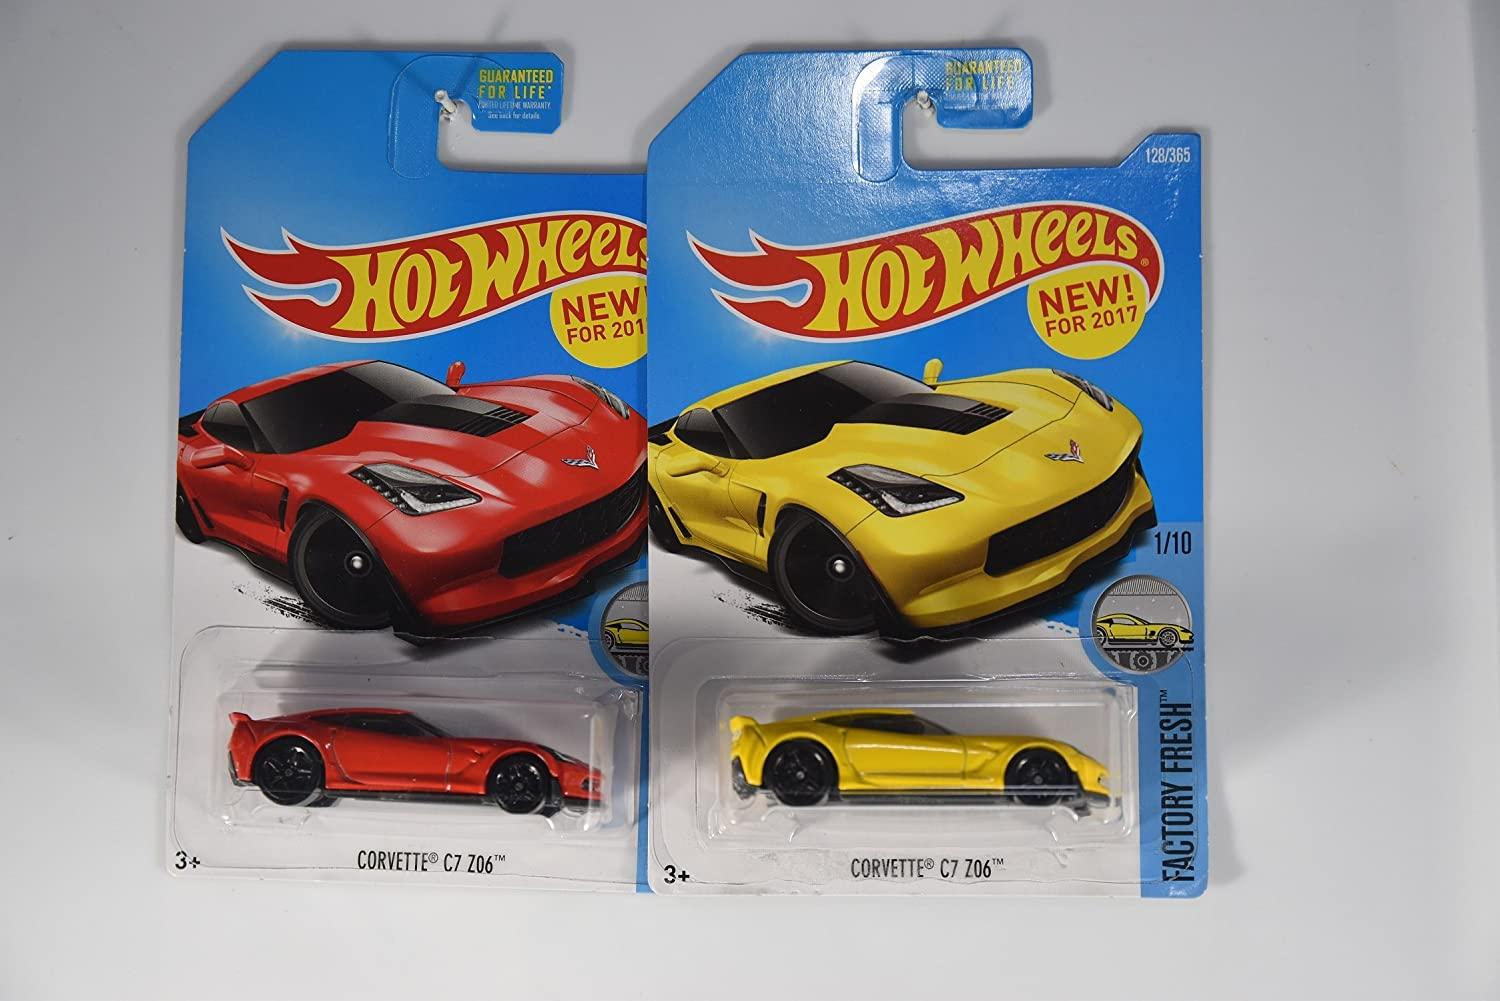 Hot Wheels 2017 Factory Fresh Corvette C7 Z06 1/10, juego de 2 autos: rojo y amarillo